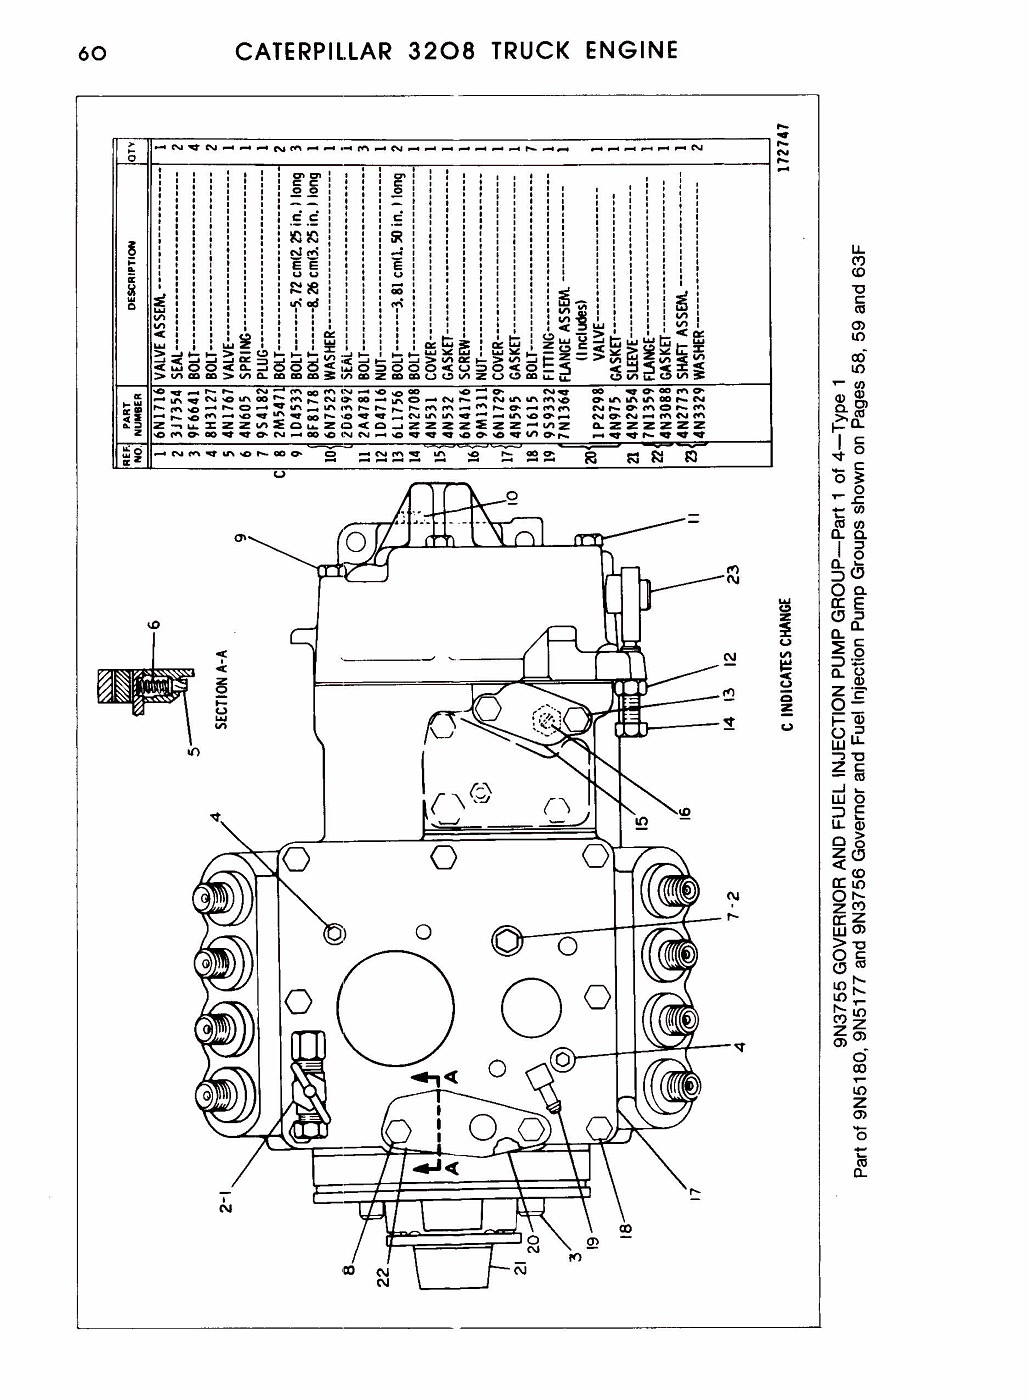 hight resolution of cat 3208 starter motor wiring diagram wiring library rh 2 evitta de cat 3208 injection pump